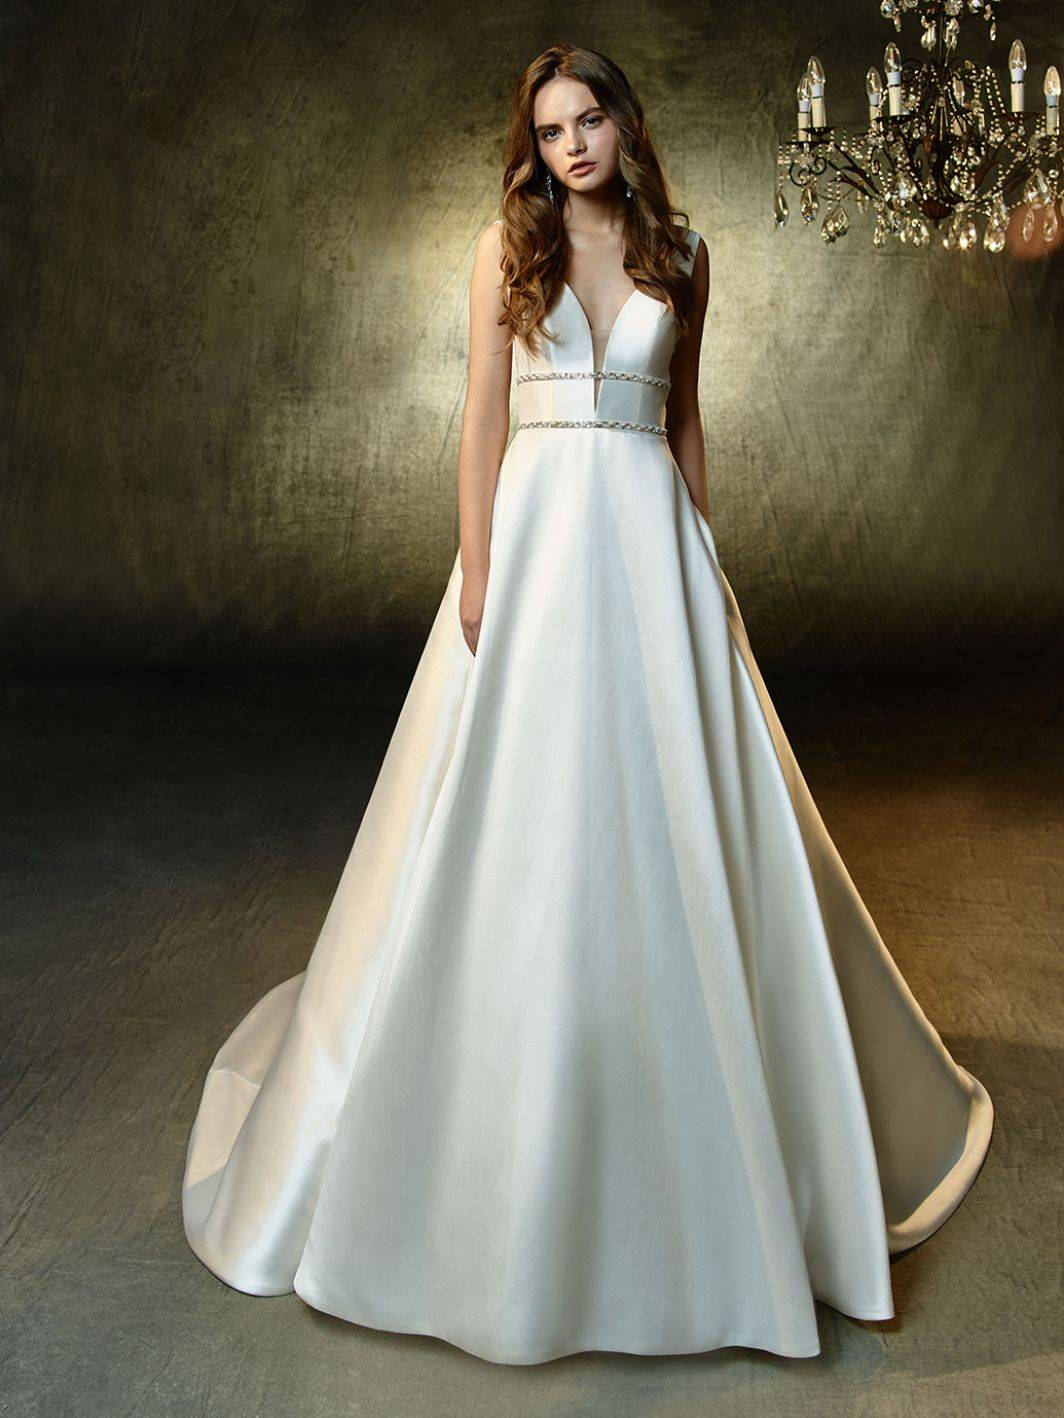 ENZOANI WEDDING DRESS LEANDRA